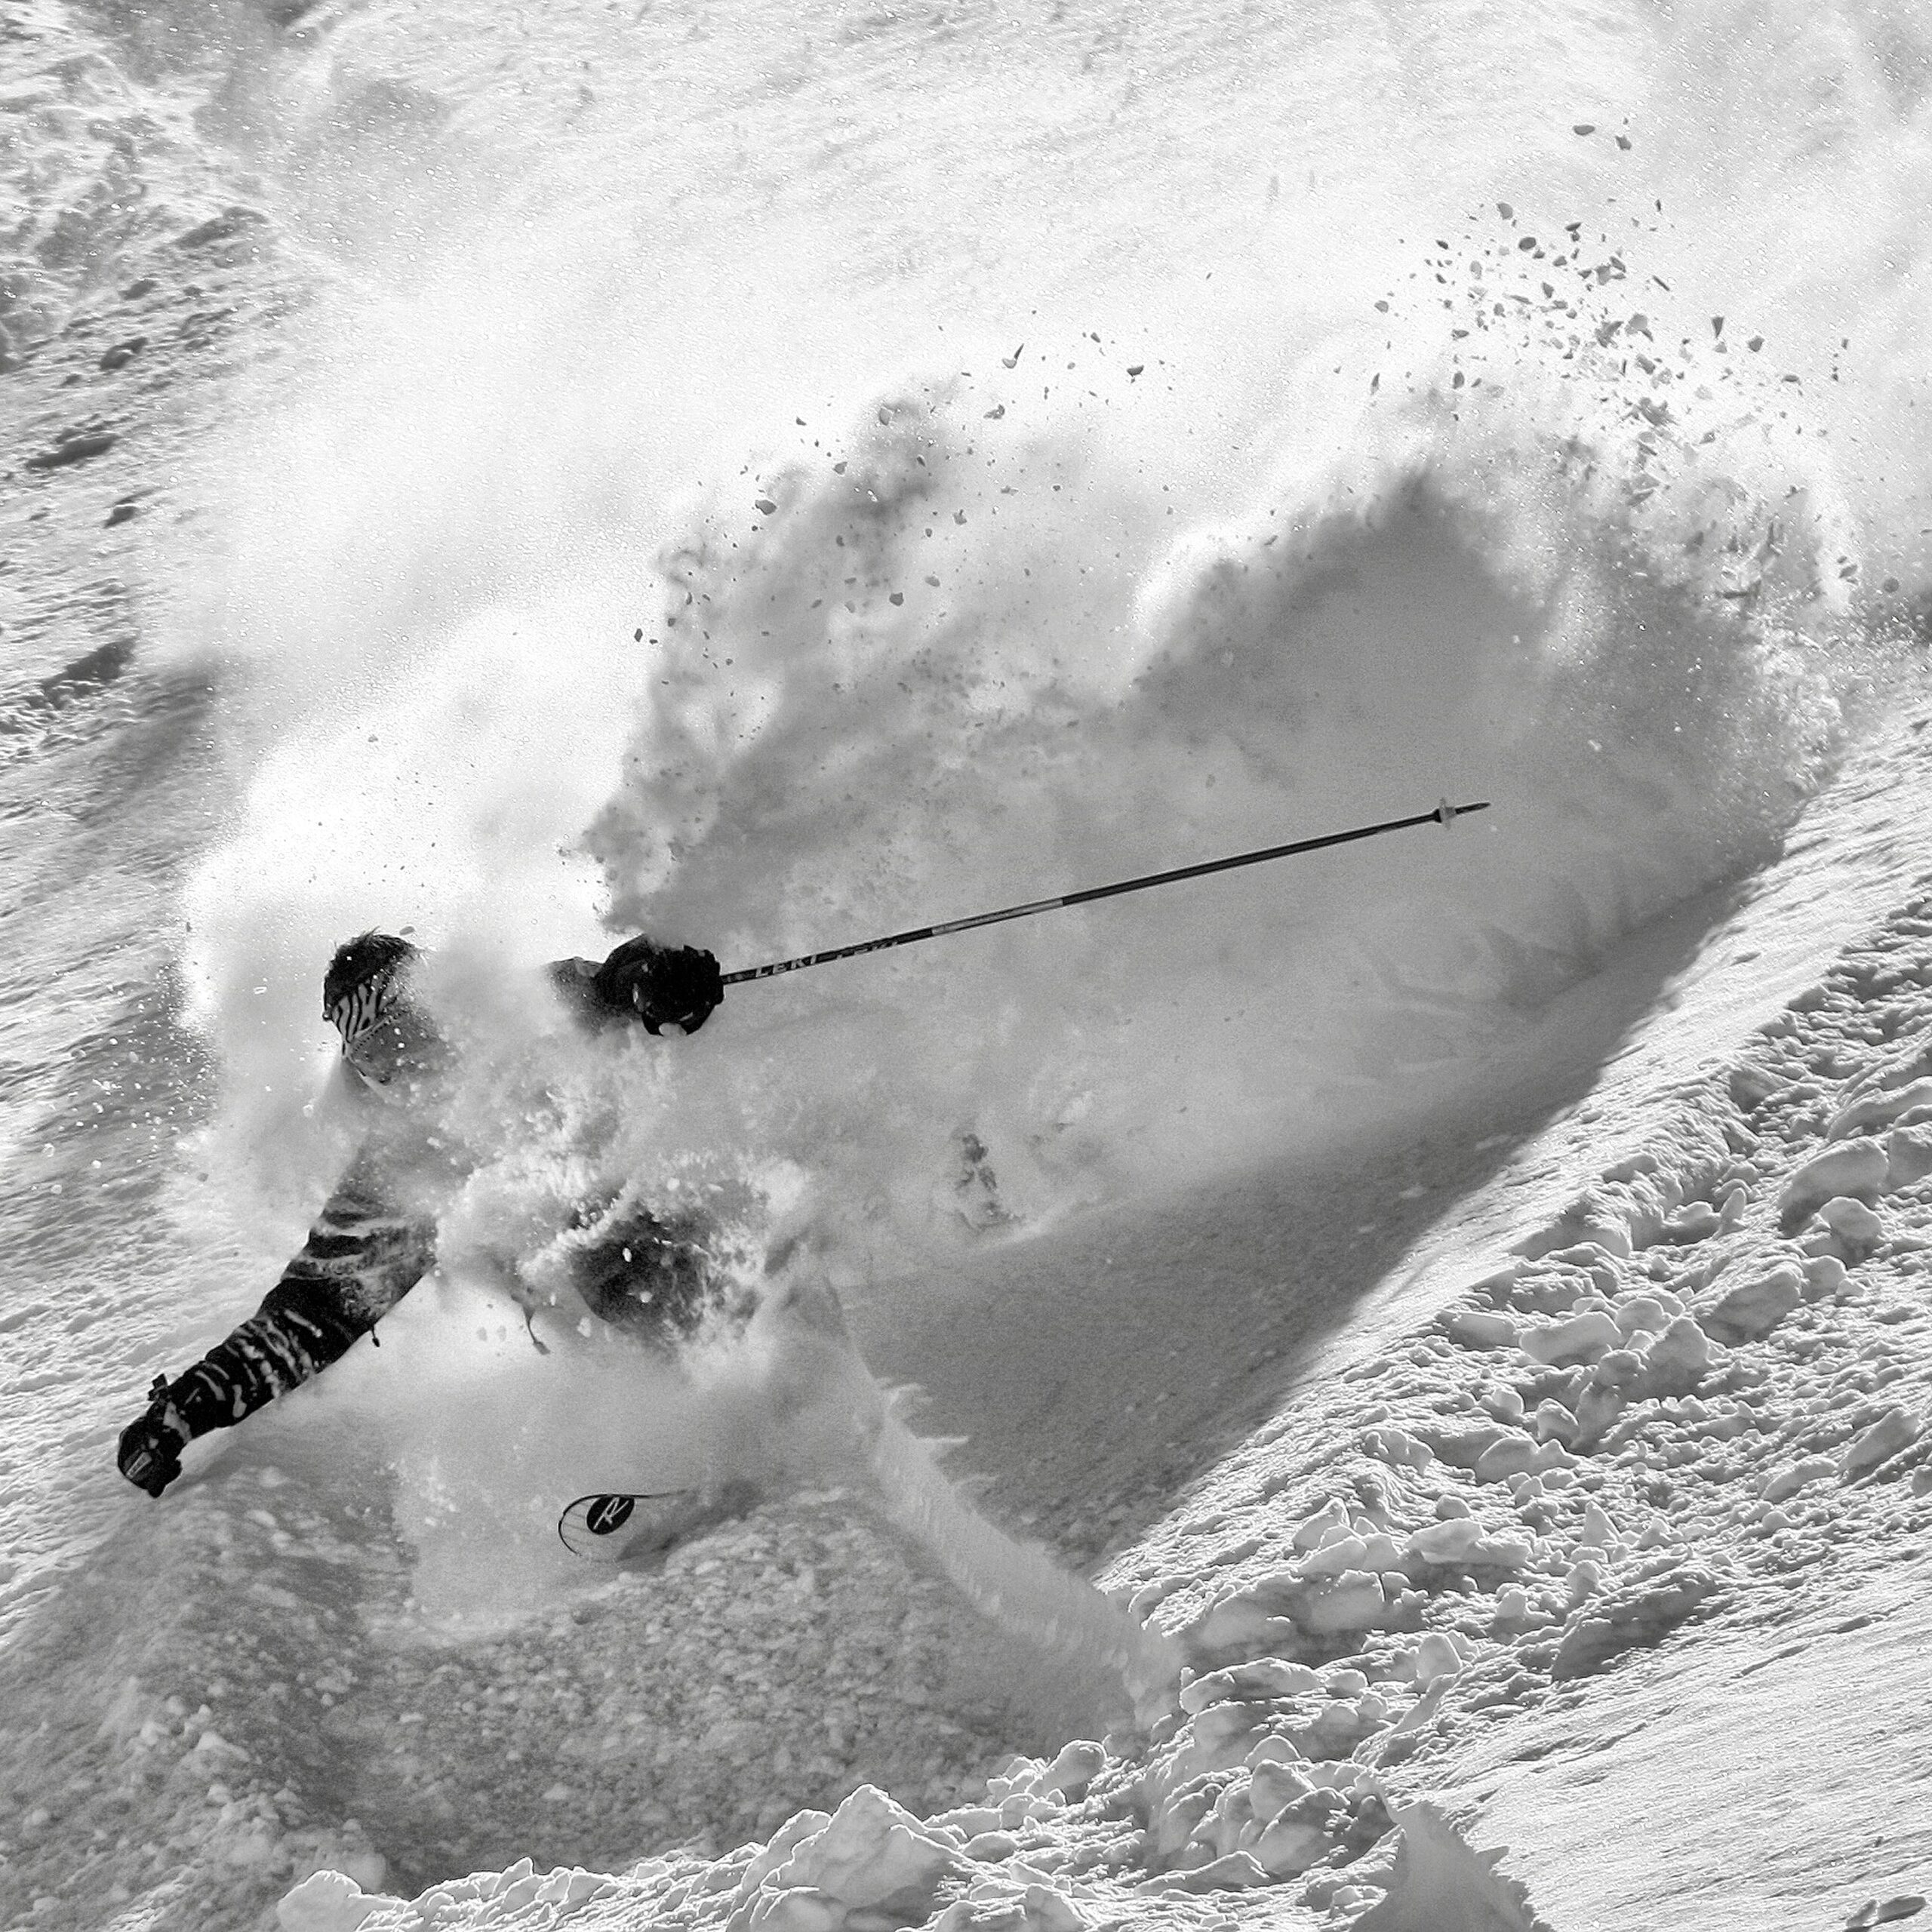 person skiing in powder